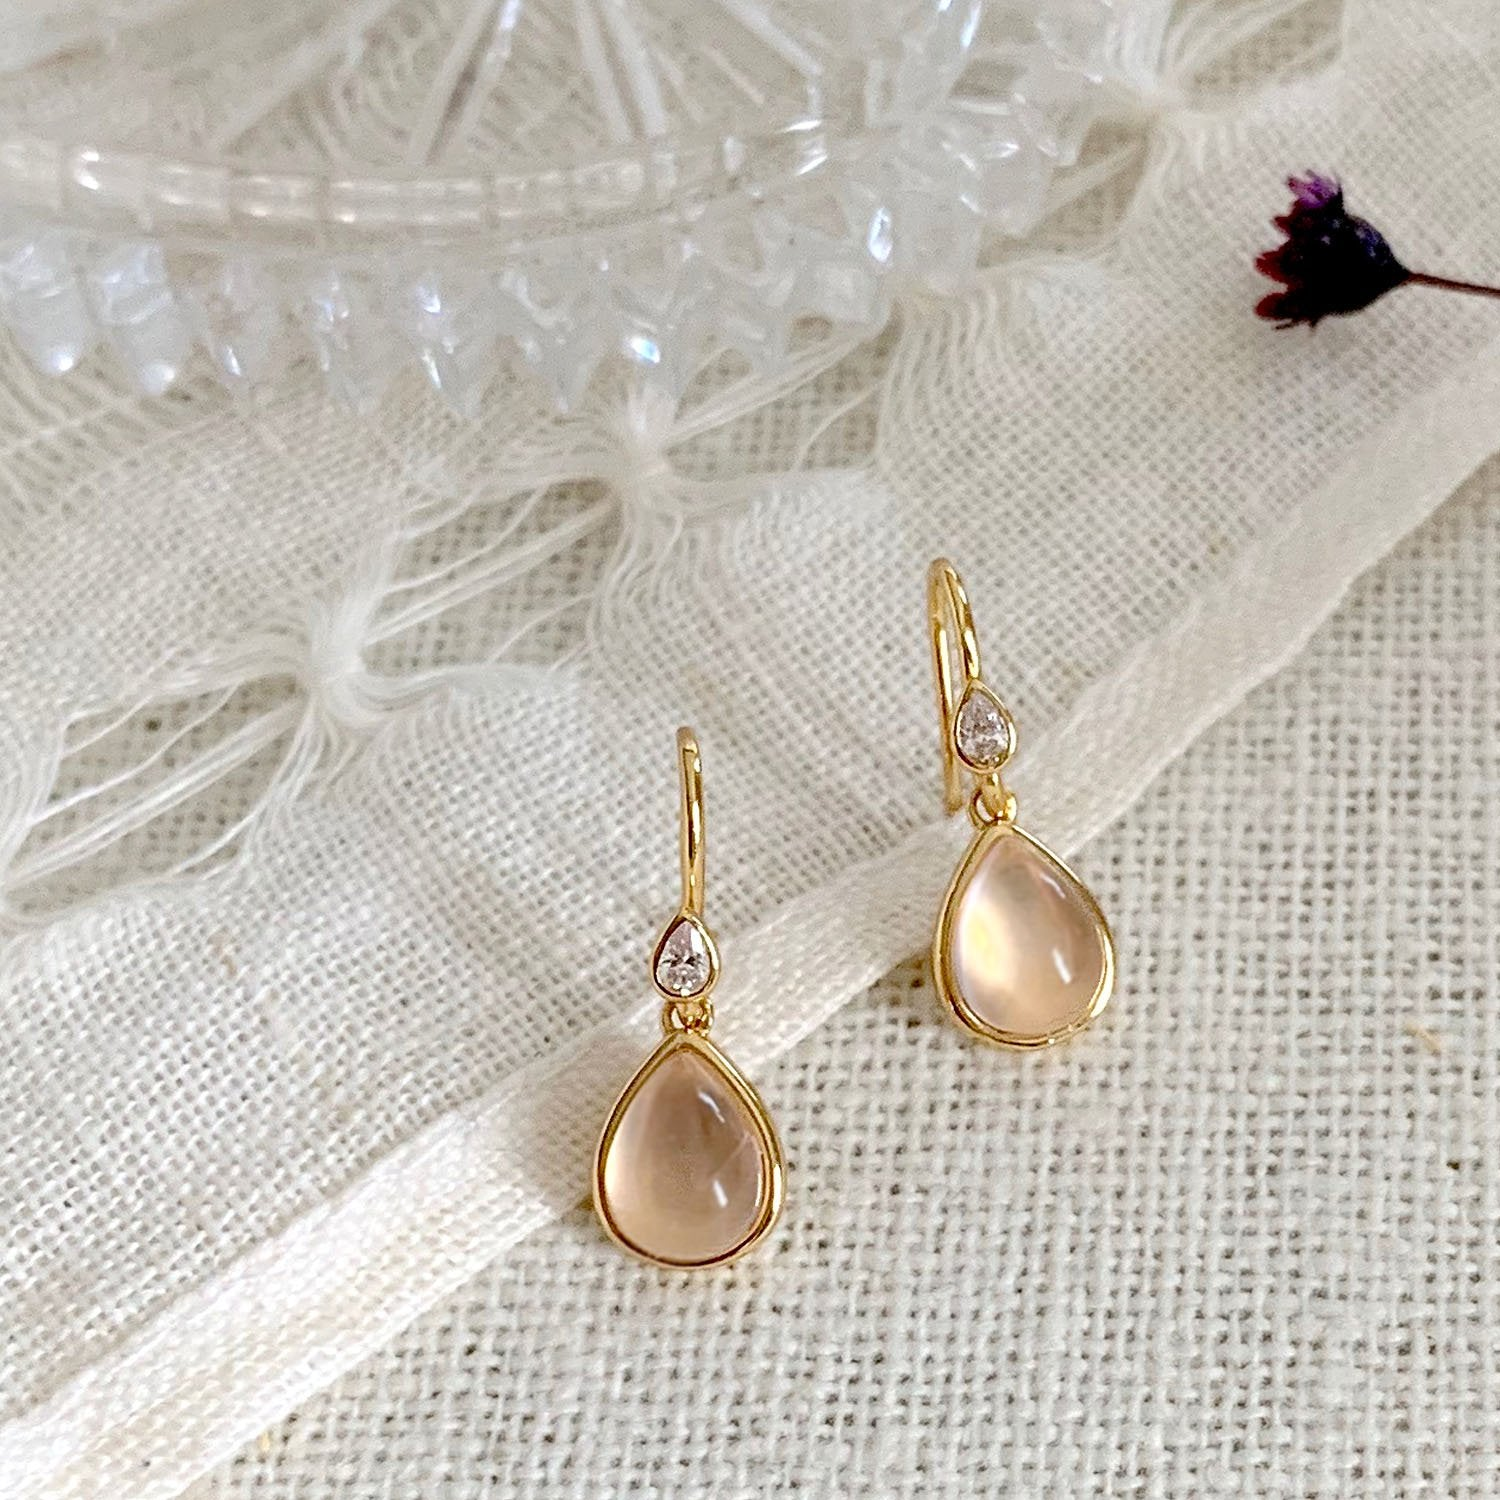 18k gold vermeil earrings rose quartz tear drop shape handmade jewelry kemmi collection